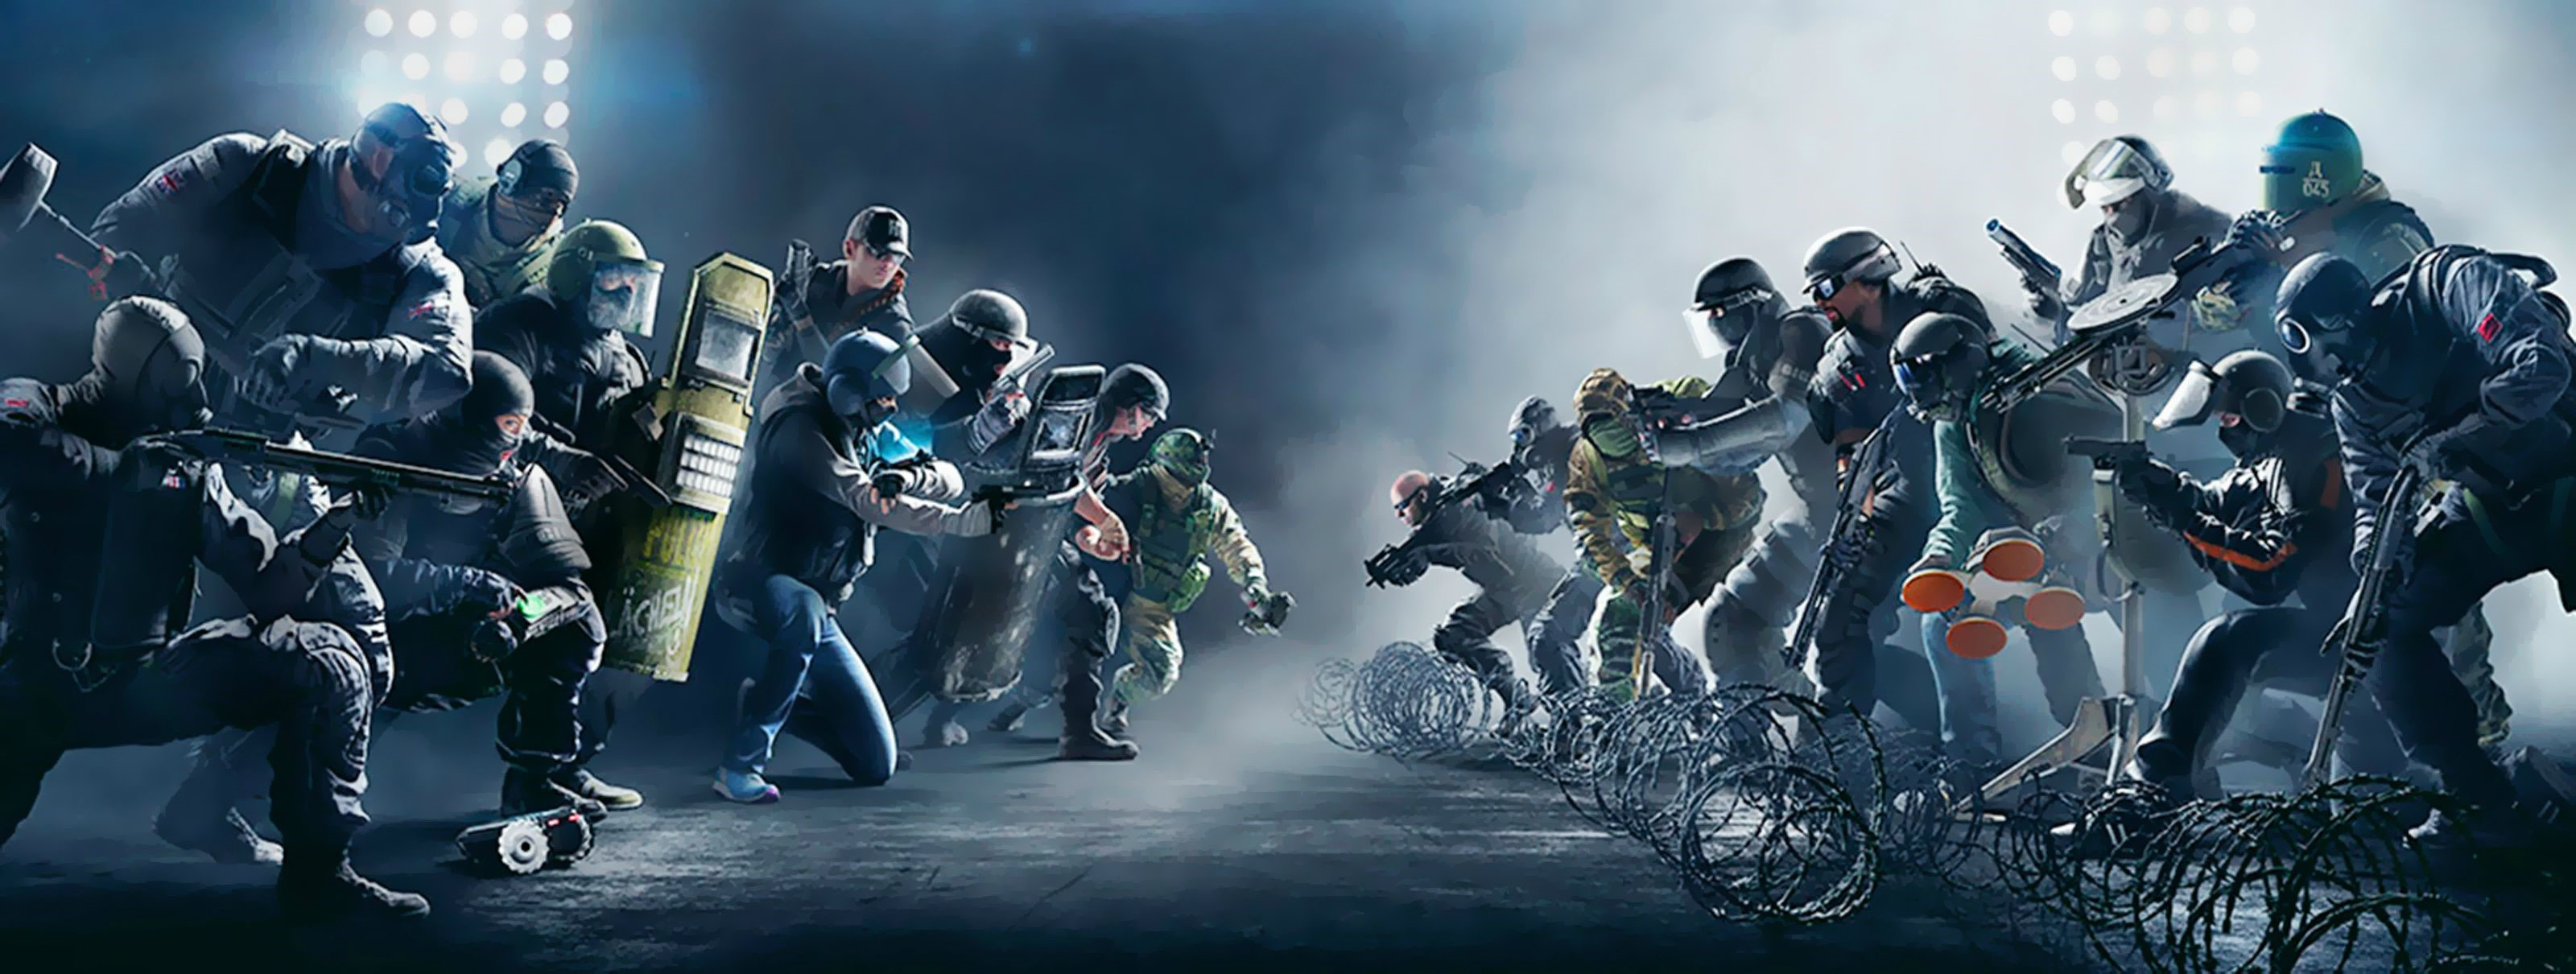 Rainbow Six Siege images